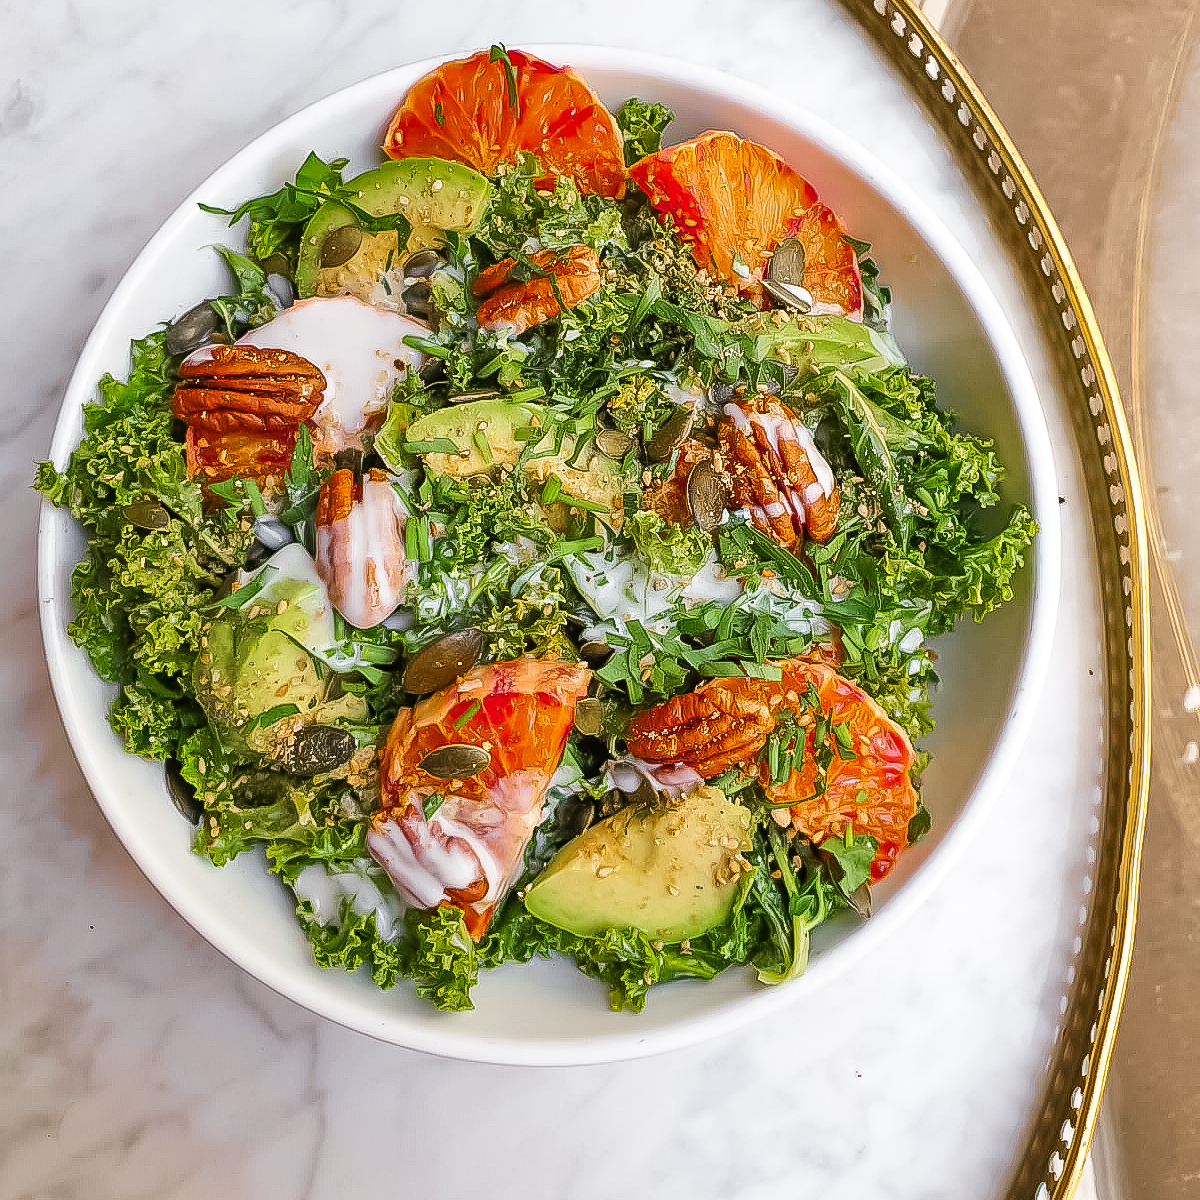 THE BEST RAW KALE SALAD